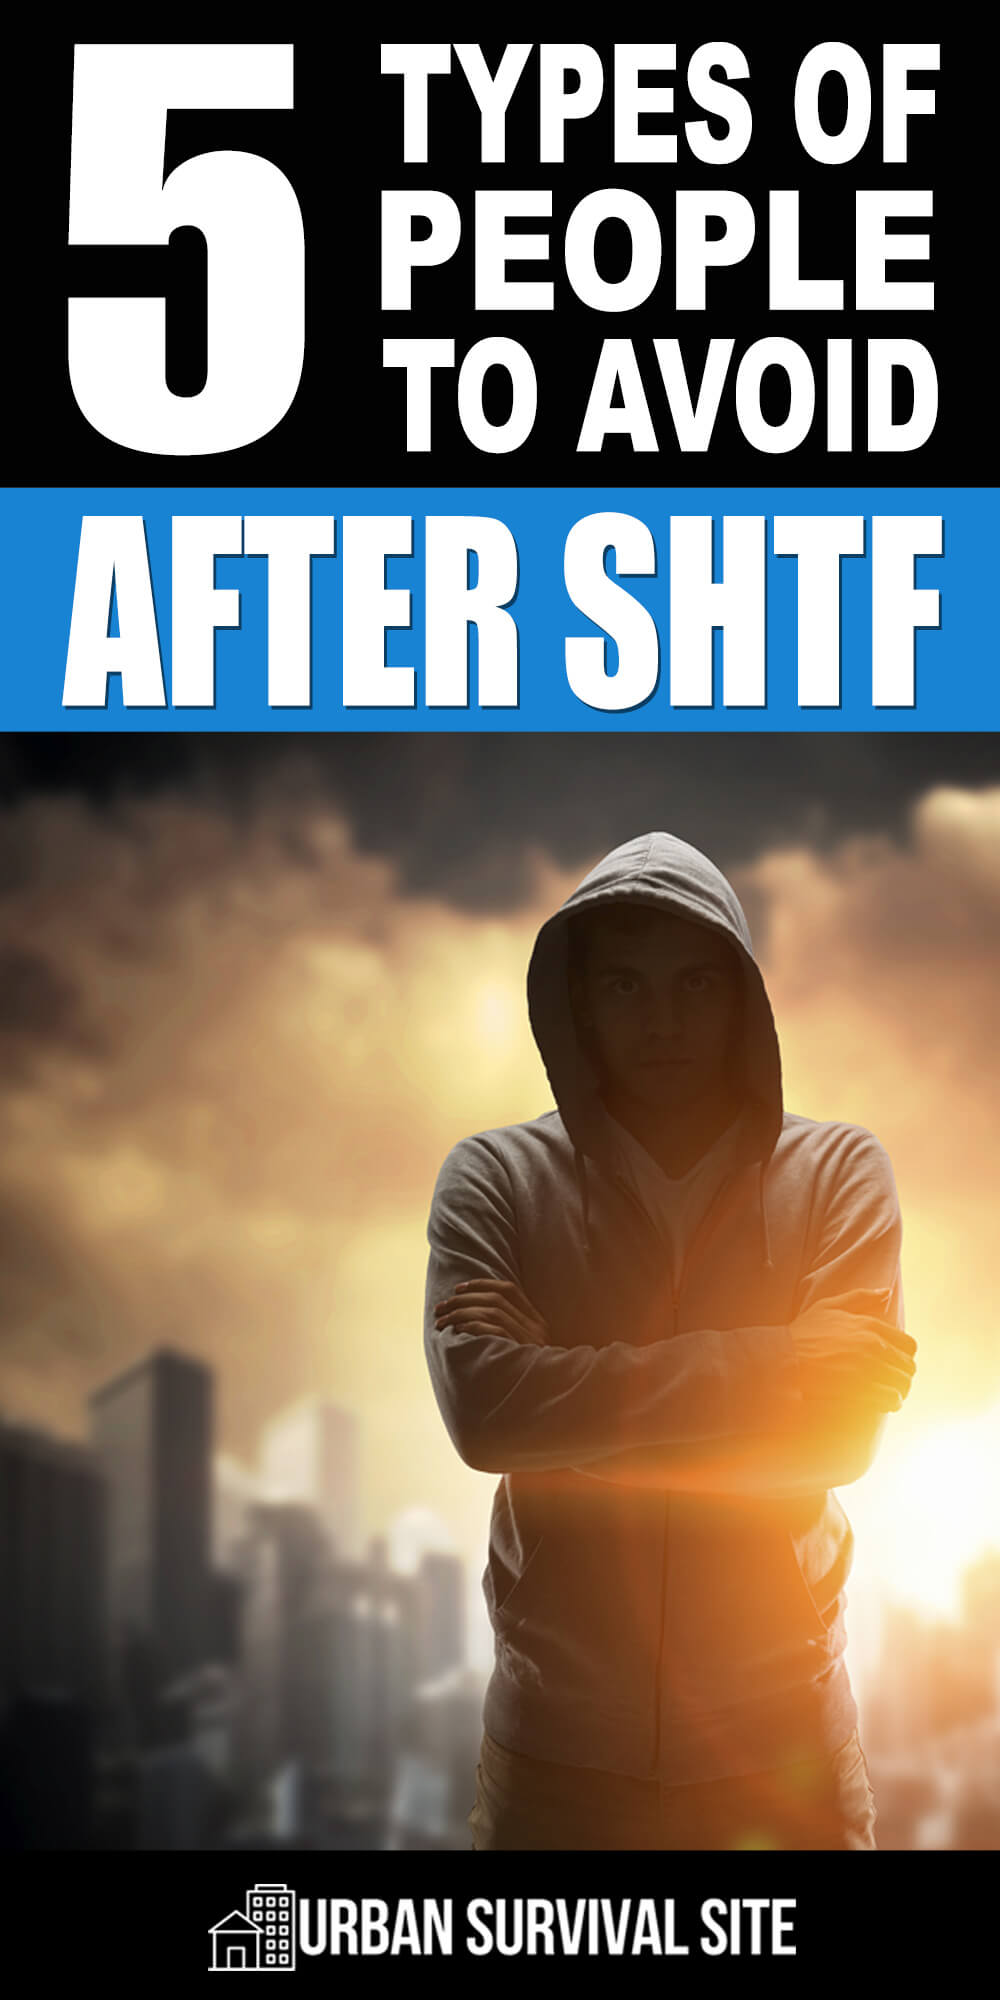 5 Types of People to Avoid After SHTF